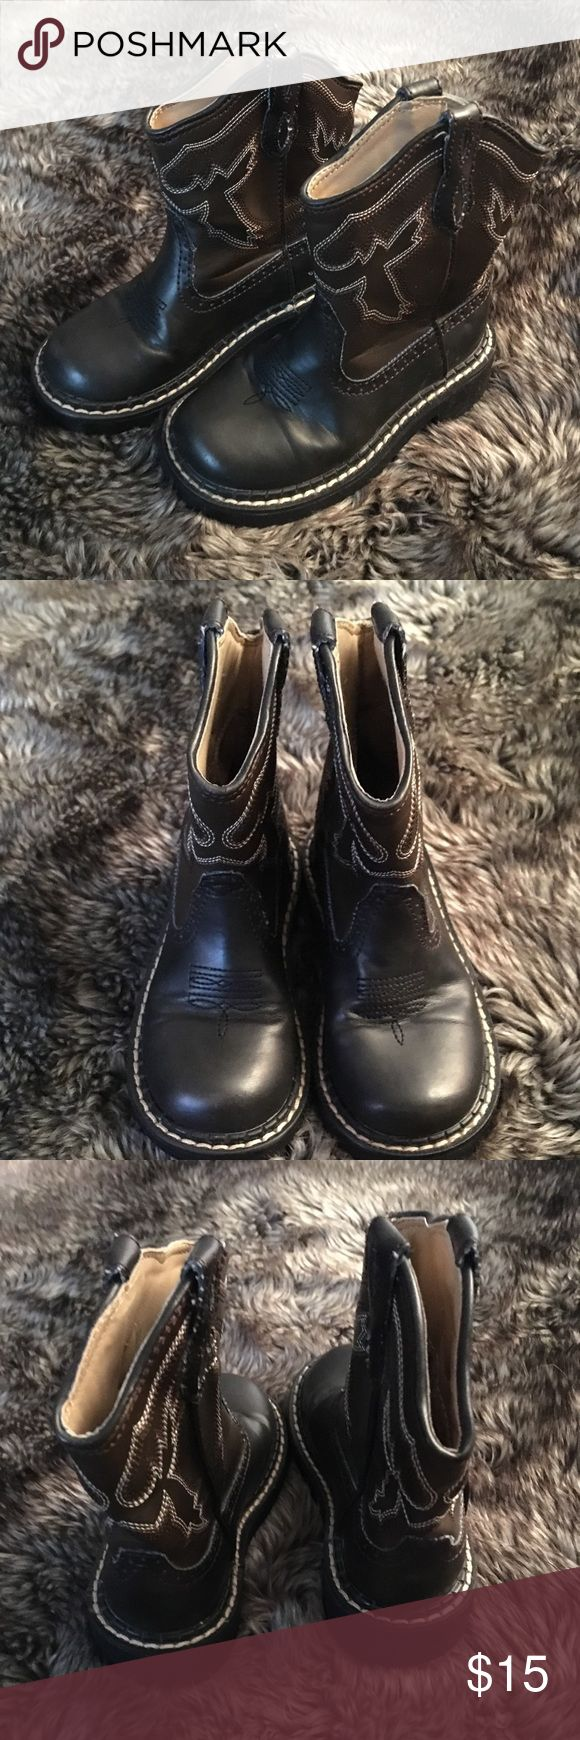 Roper boys western boots sz9 Roper boys western boots size 9.  Brown in color. Some wear but still good condition. Roper Shoes Boots